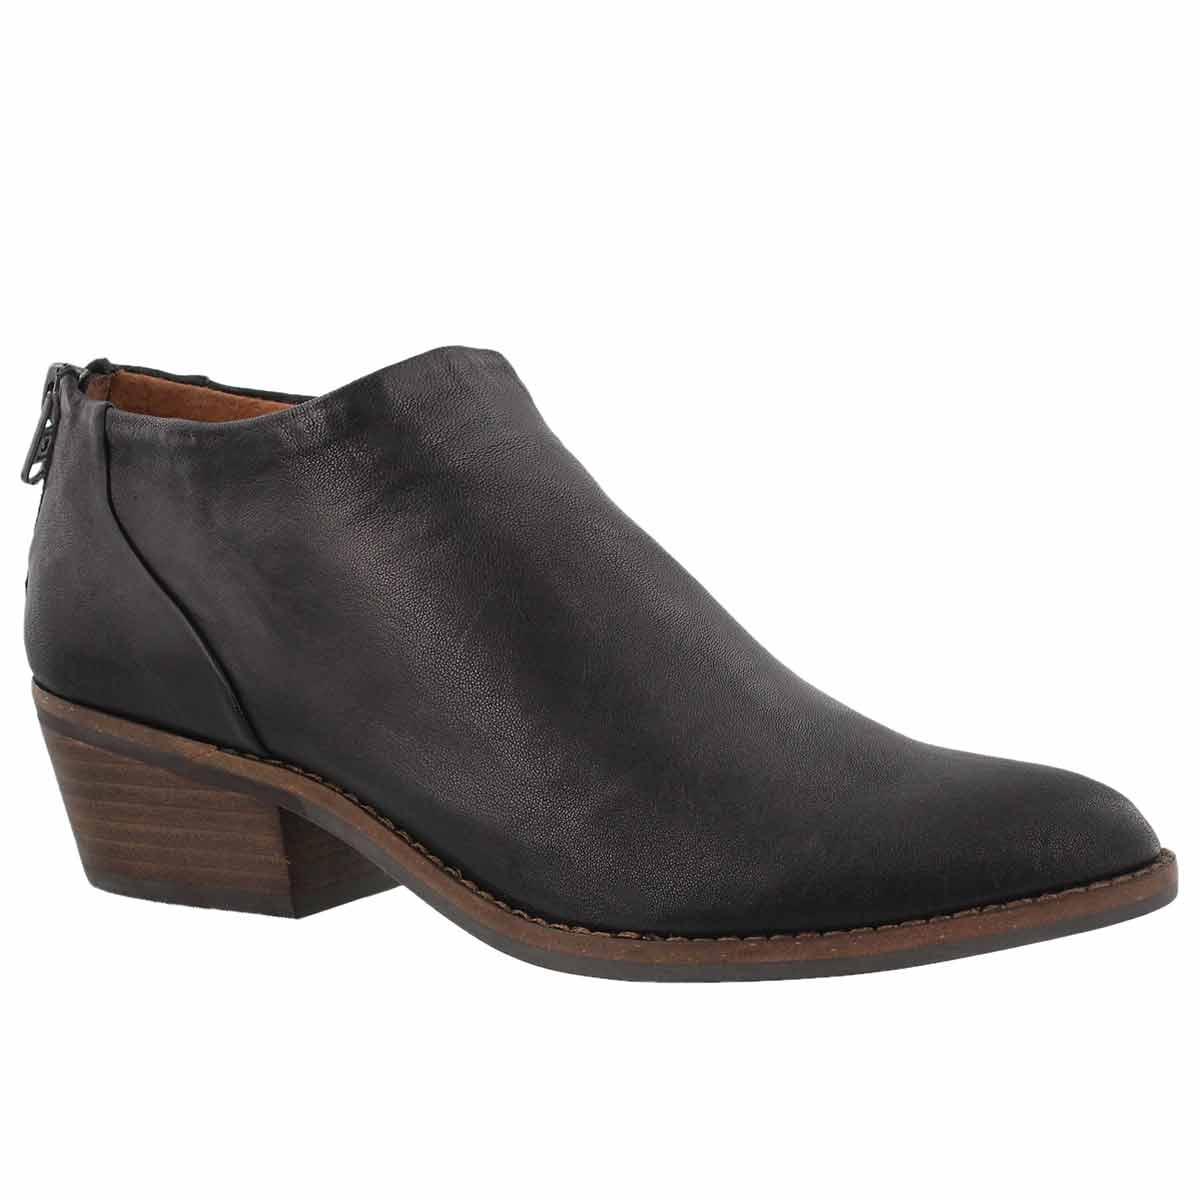 Women's FAI black zip up low casual booties